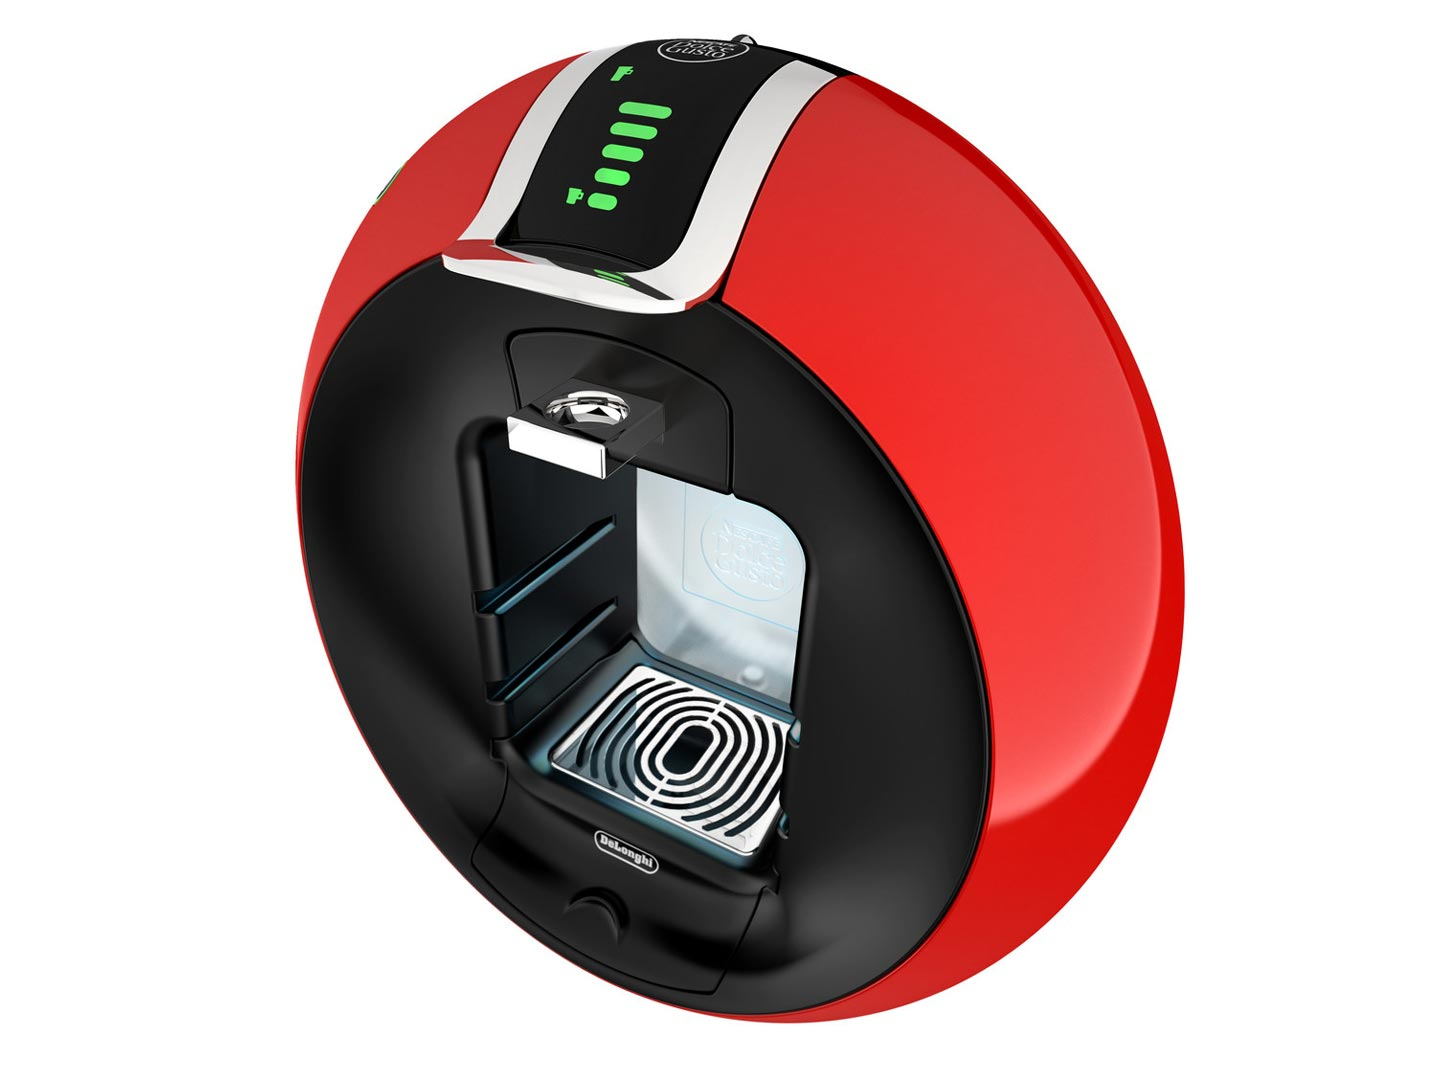 Electronic Nescafe Dolce Gusto Coffee Machines dolce gusto coffee machines delonghi australia circolo automatic edg605r